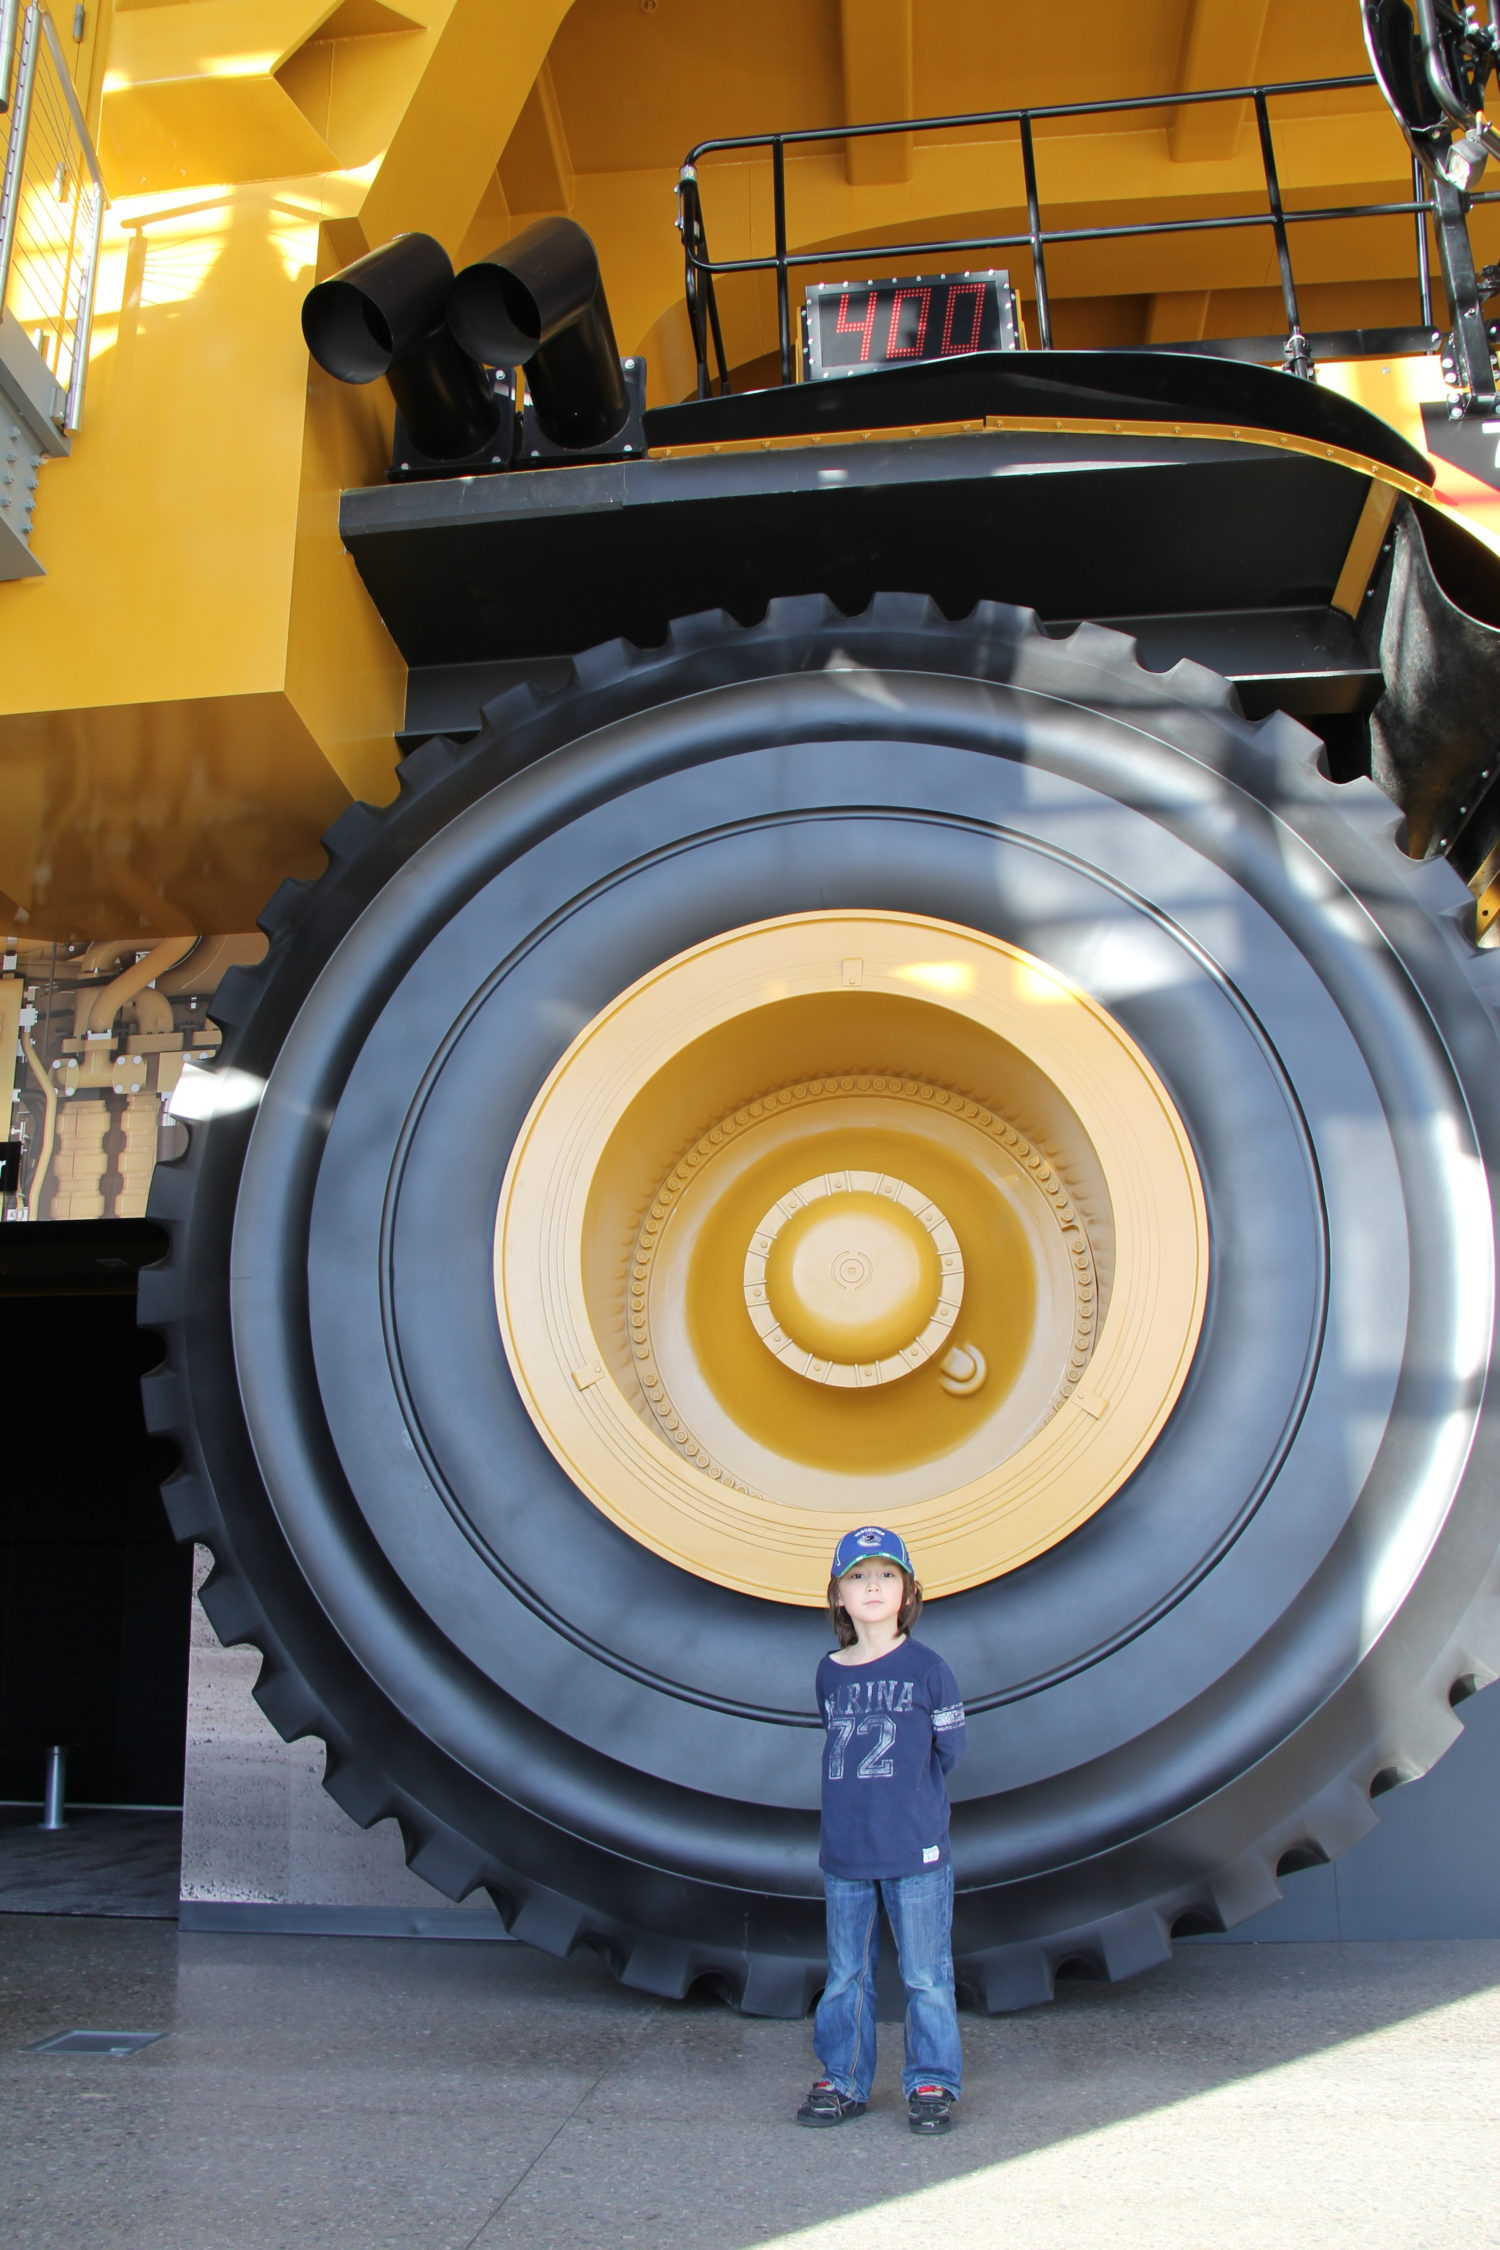 Seiji in front of a giant mining truck at the Caterpillar Visitor Centre in Peoria, Illinois.